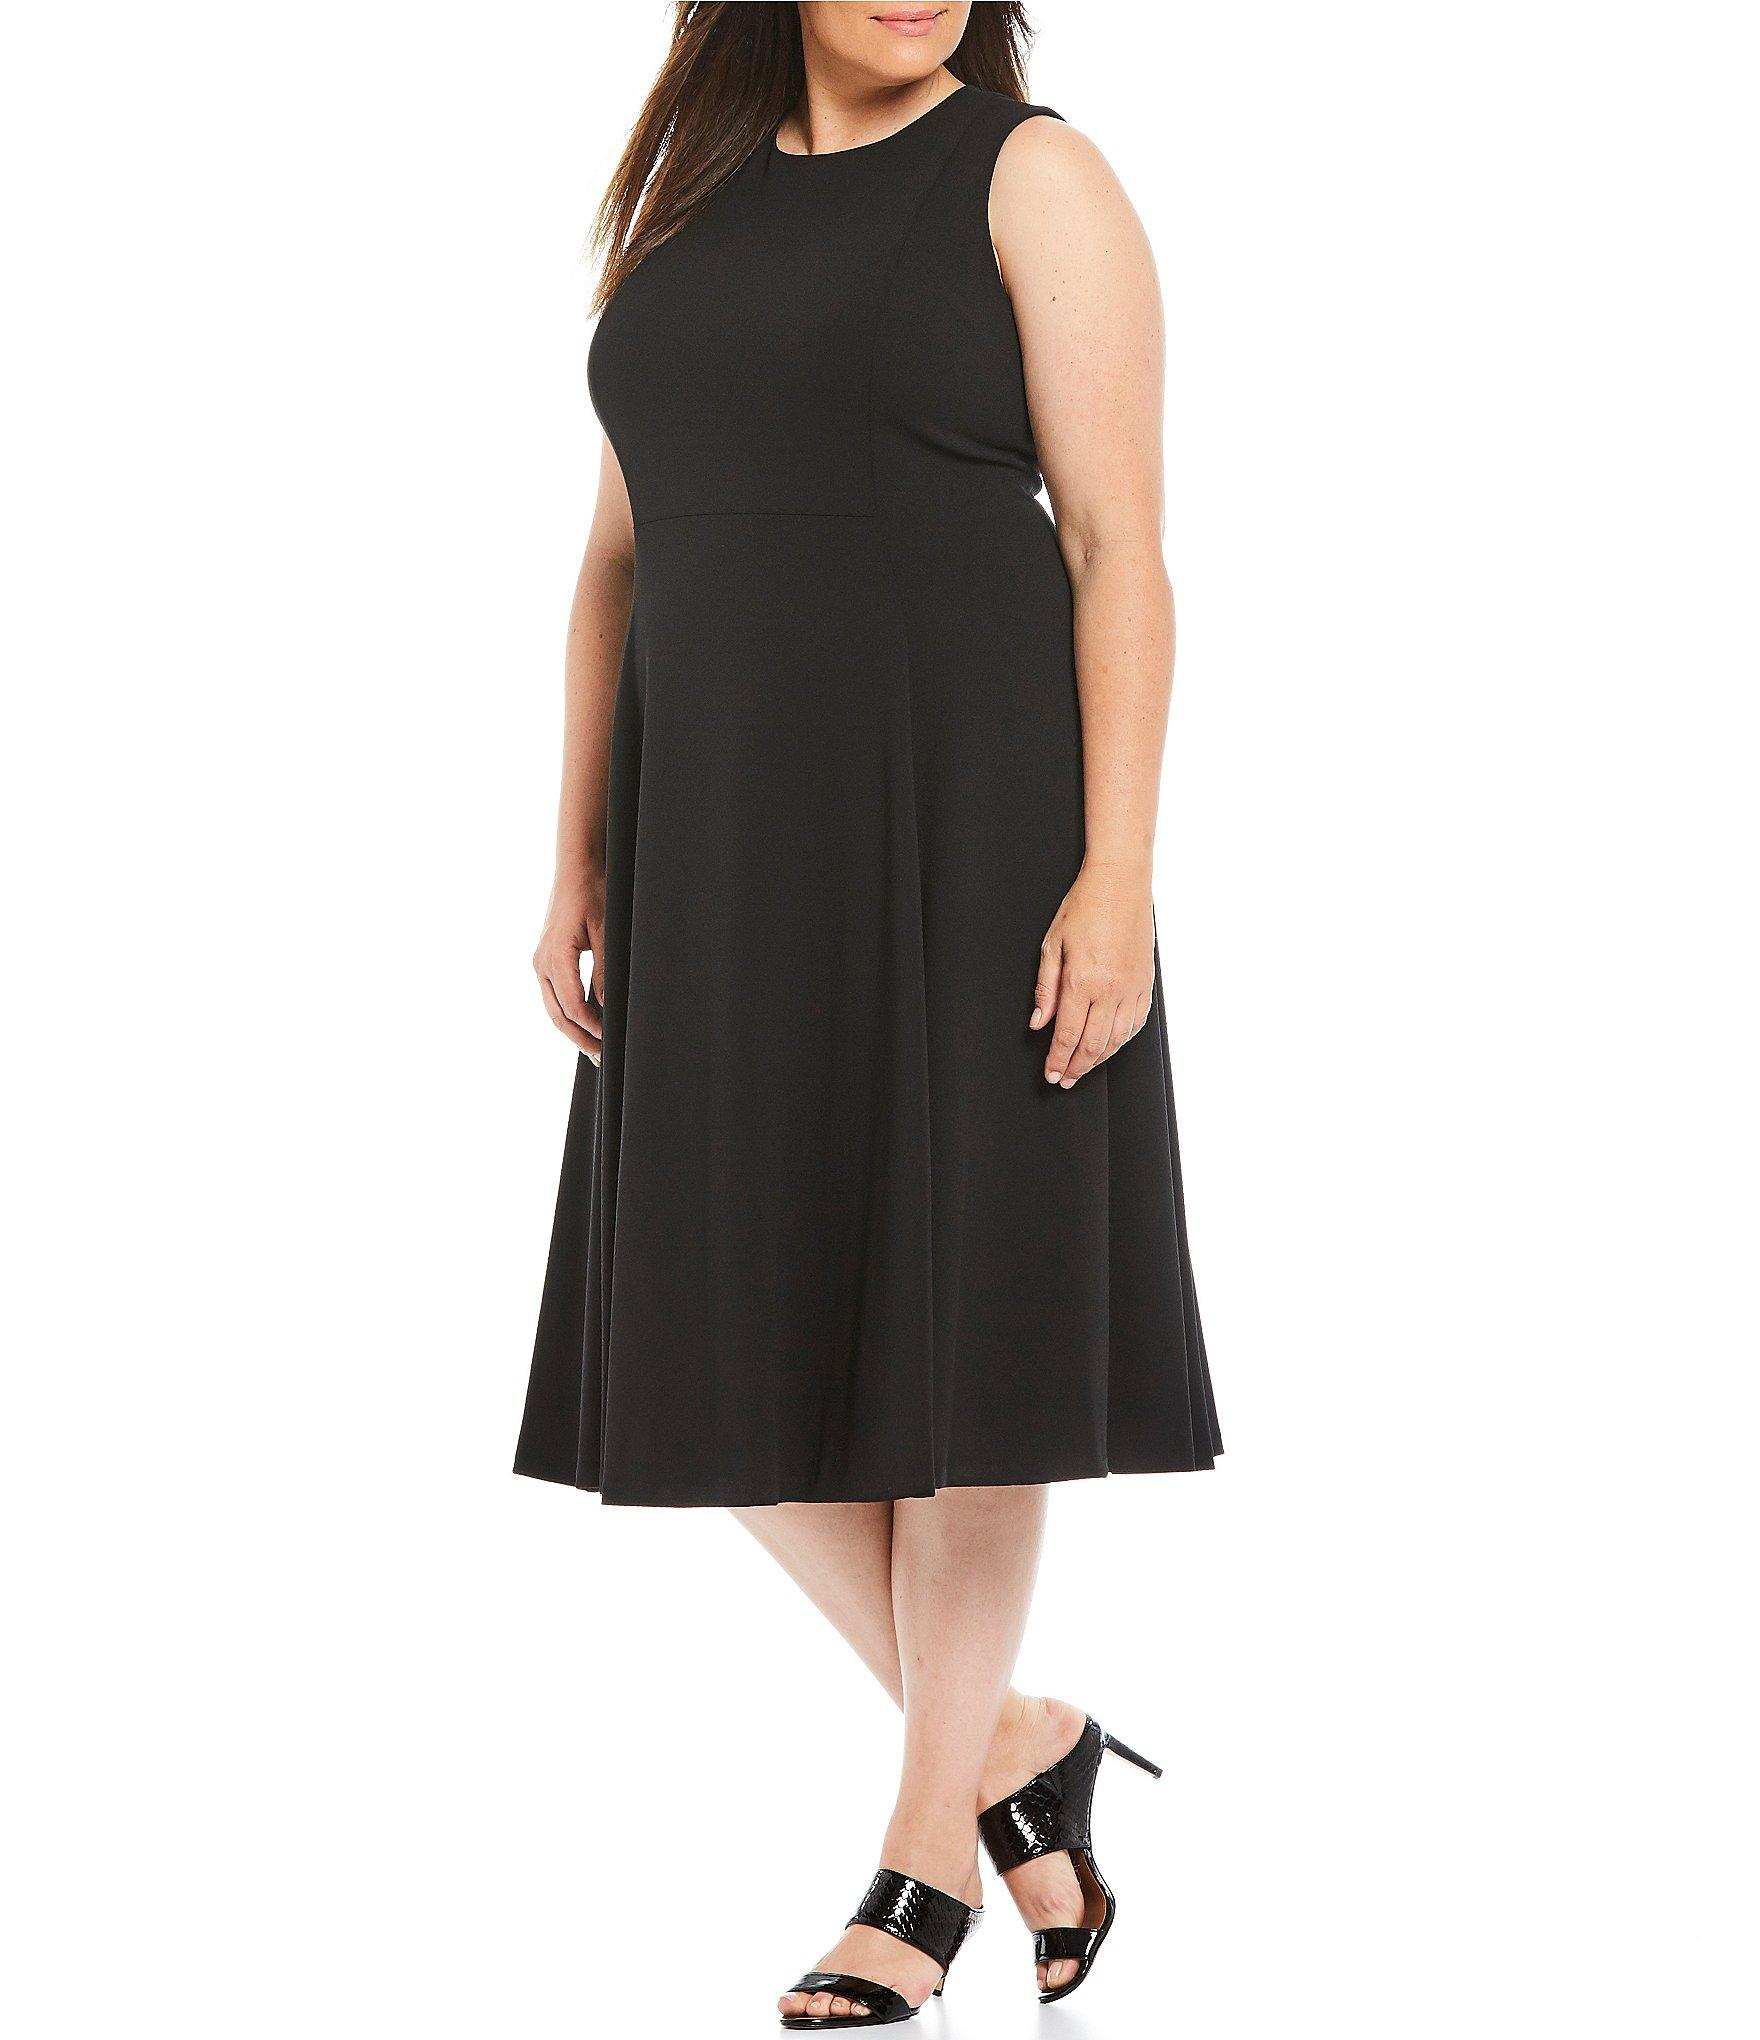 ab42fa1e Calvin Klein Plus Size Sleeveless A-line Midi Dress in Black - Lyst